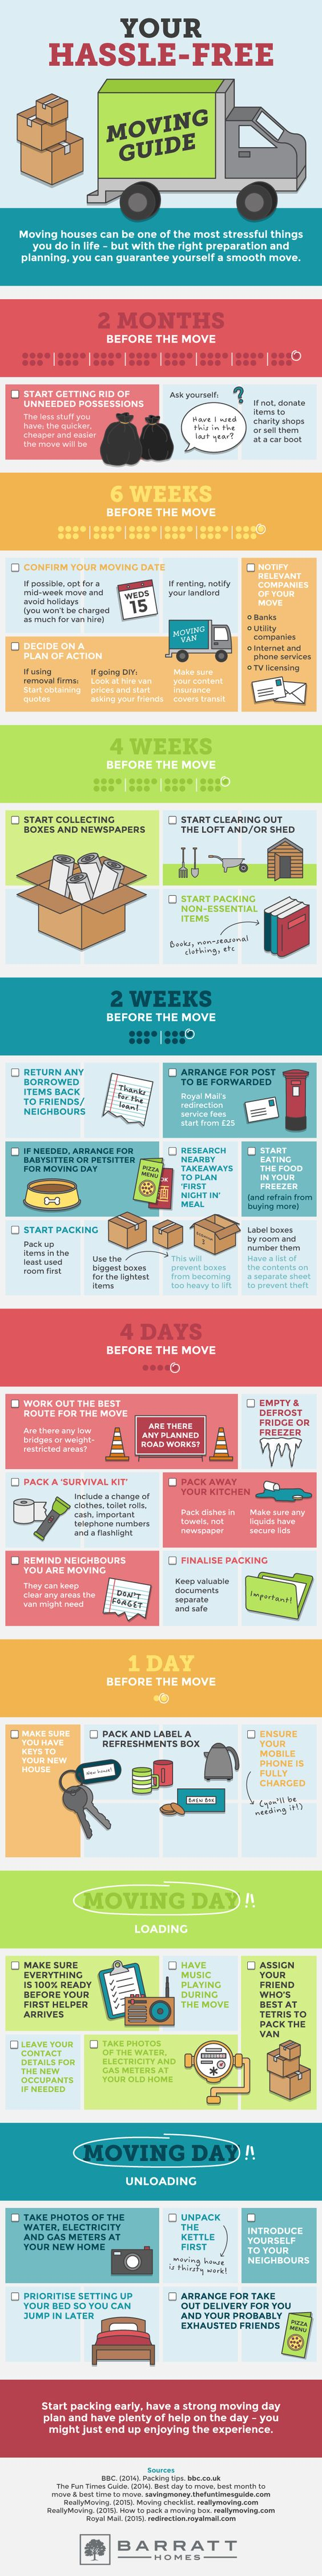 Your Hassle-Free Moving Guide Infographic | Barratt Homes